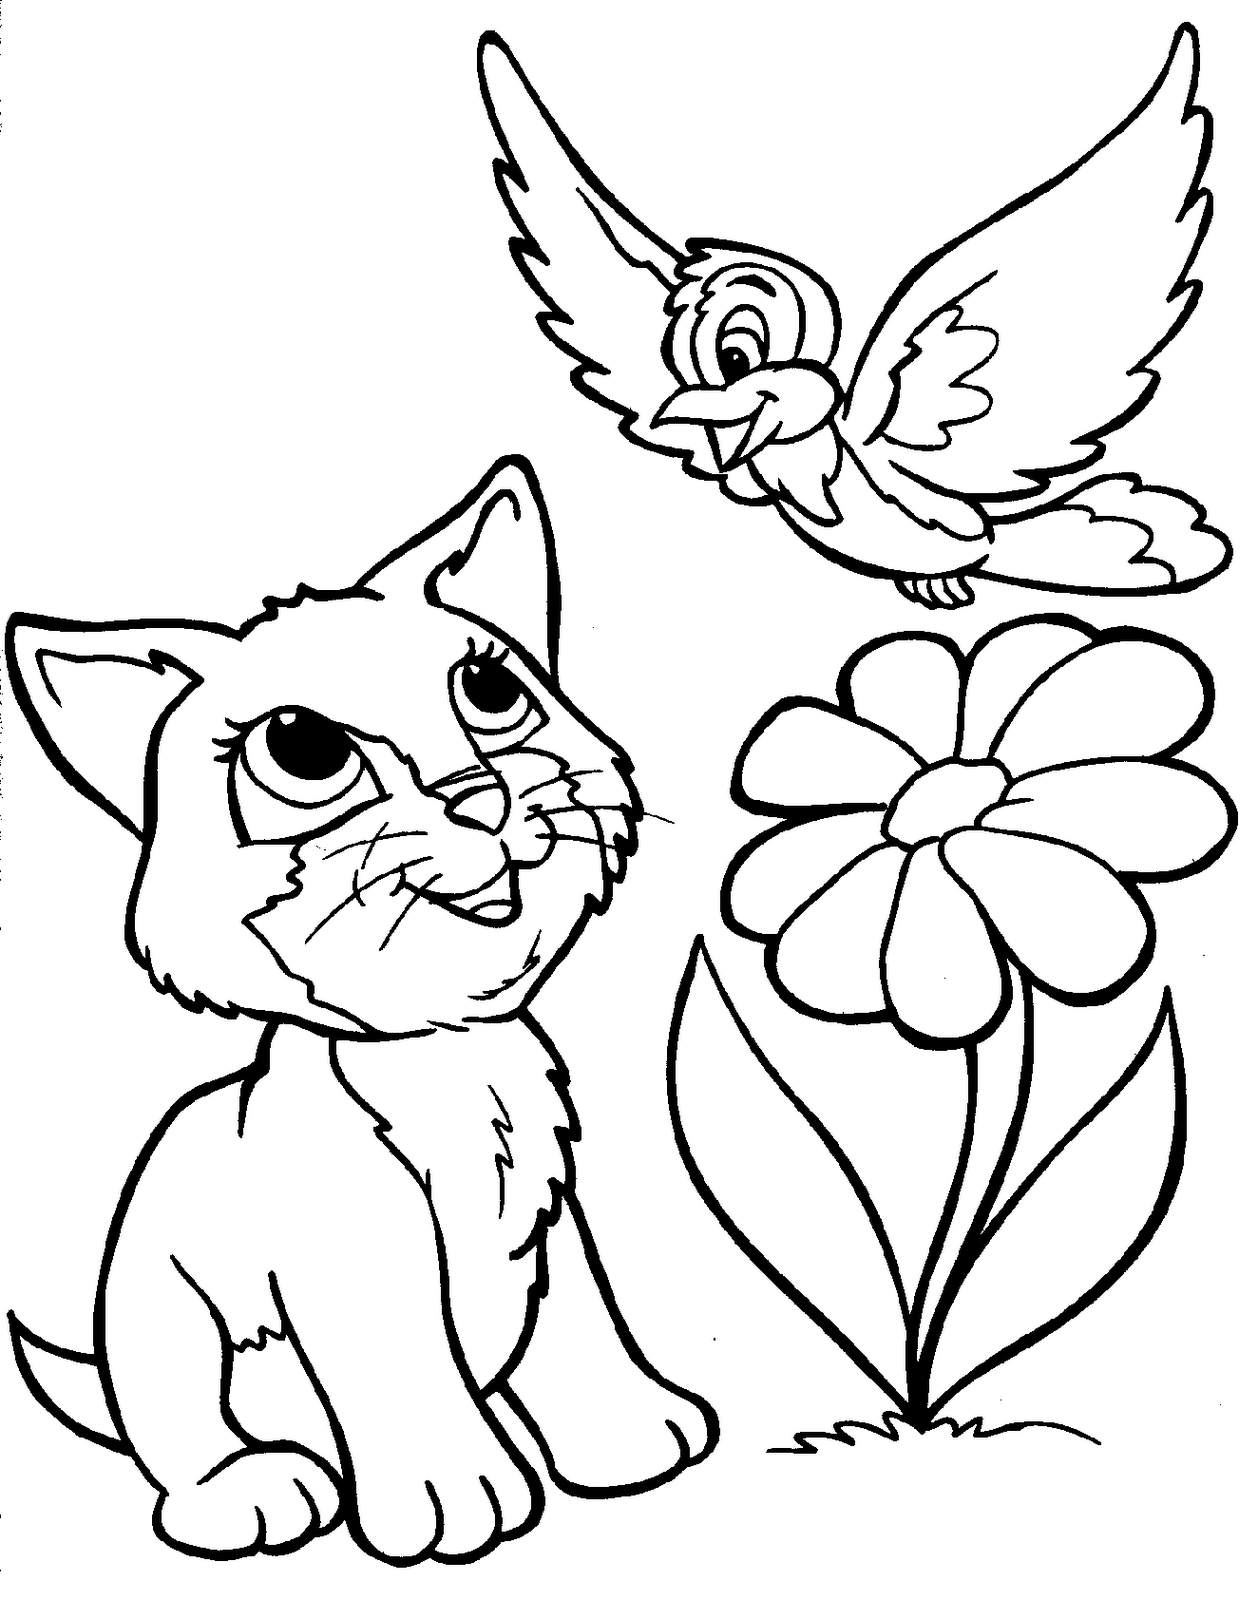 Co co coloring sheets free for kids - Co Co Coloring Sheet Of A Cat Kitten Color Pagesfree Coloring Pages For Kids Free